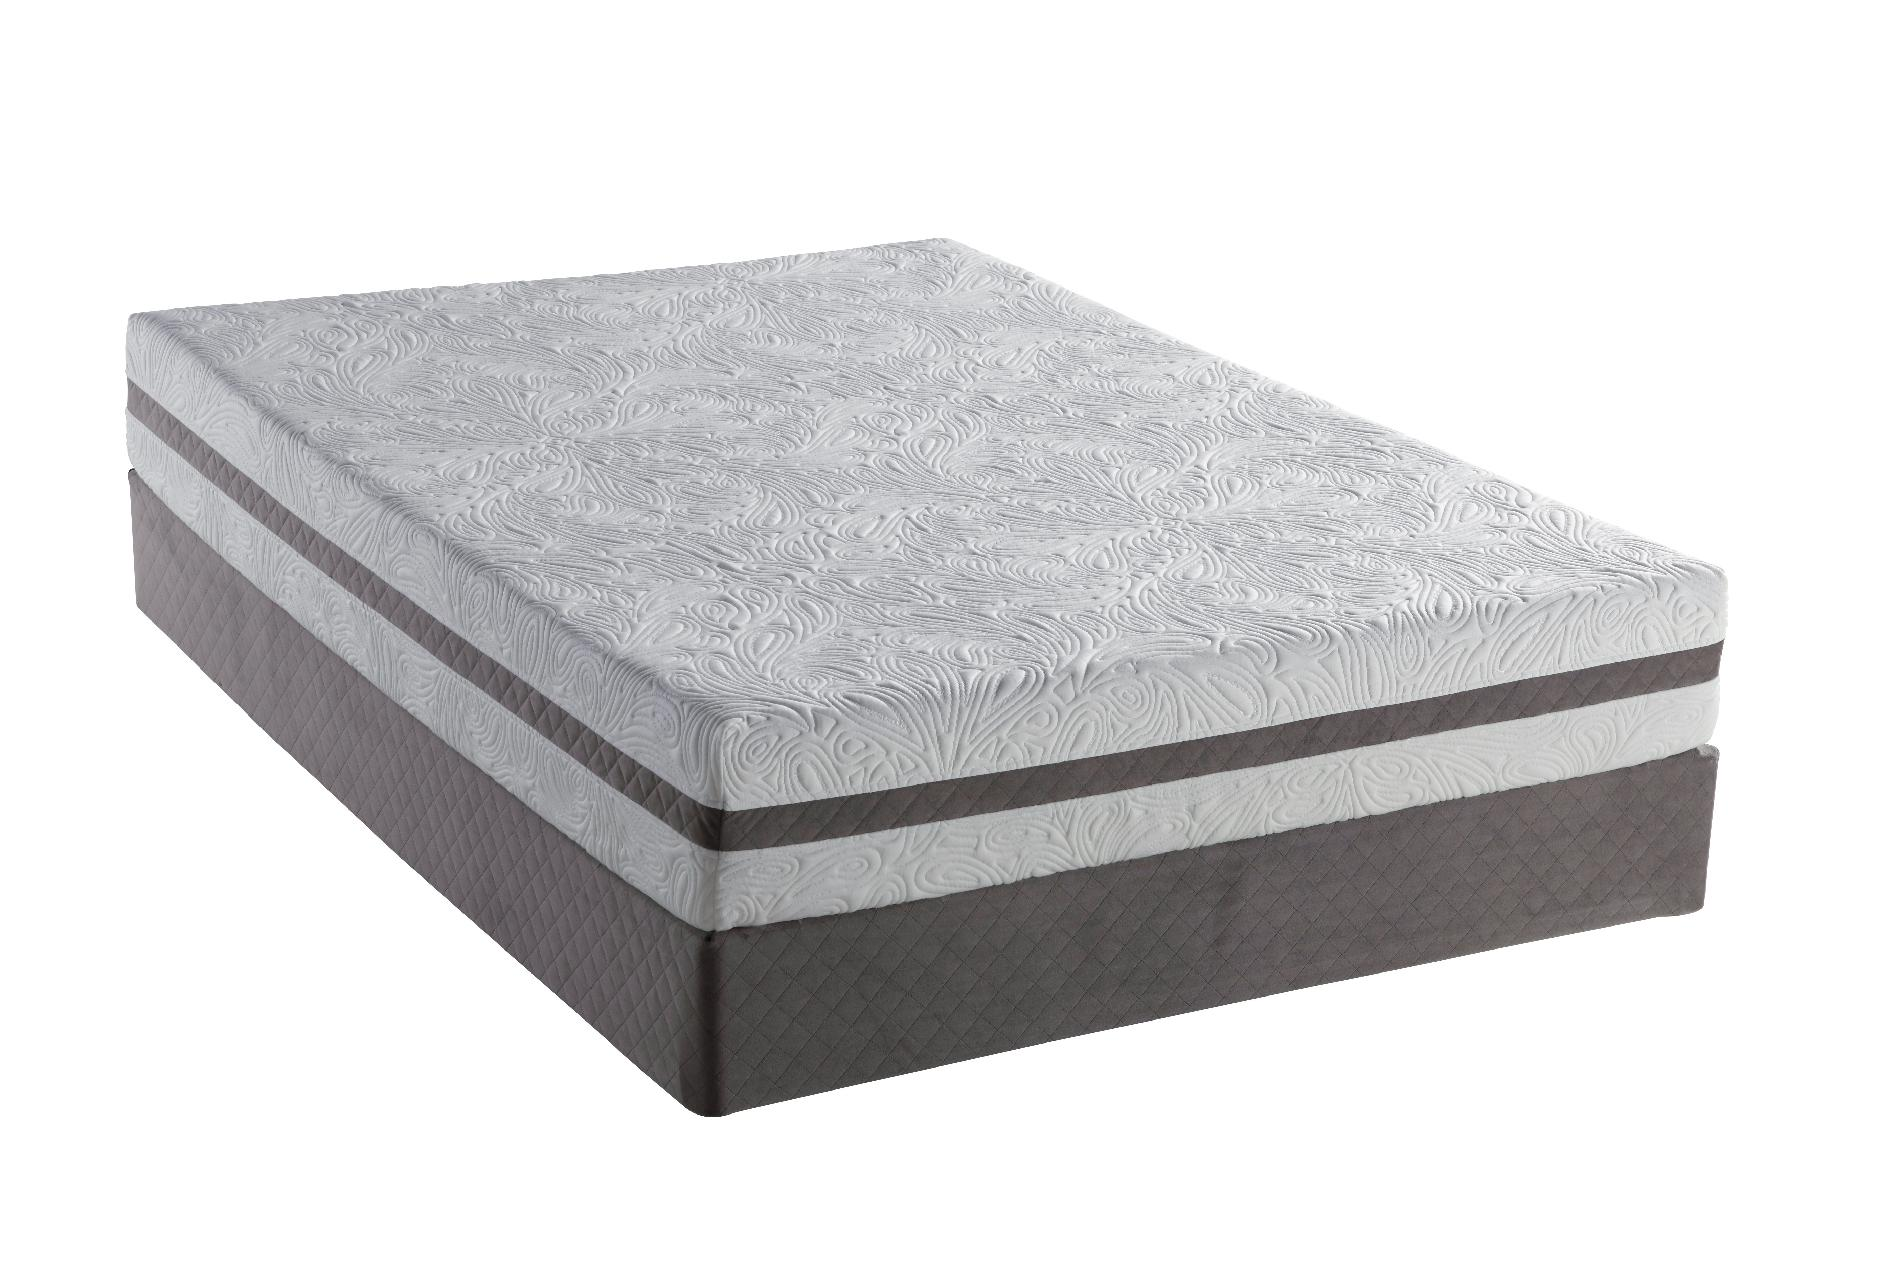 Sealy Posturepedic Optimum Radiance, Firm, Full Mattress Only